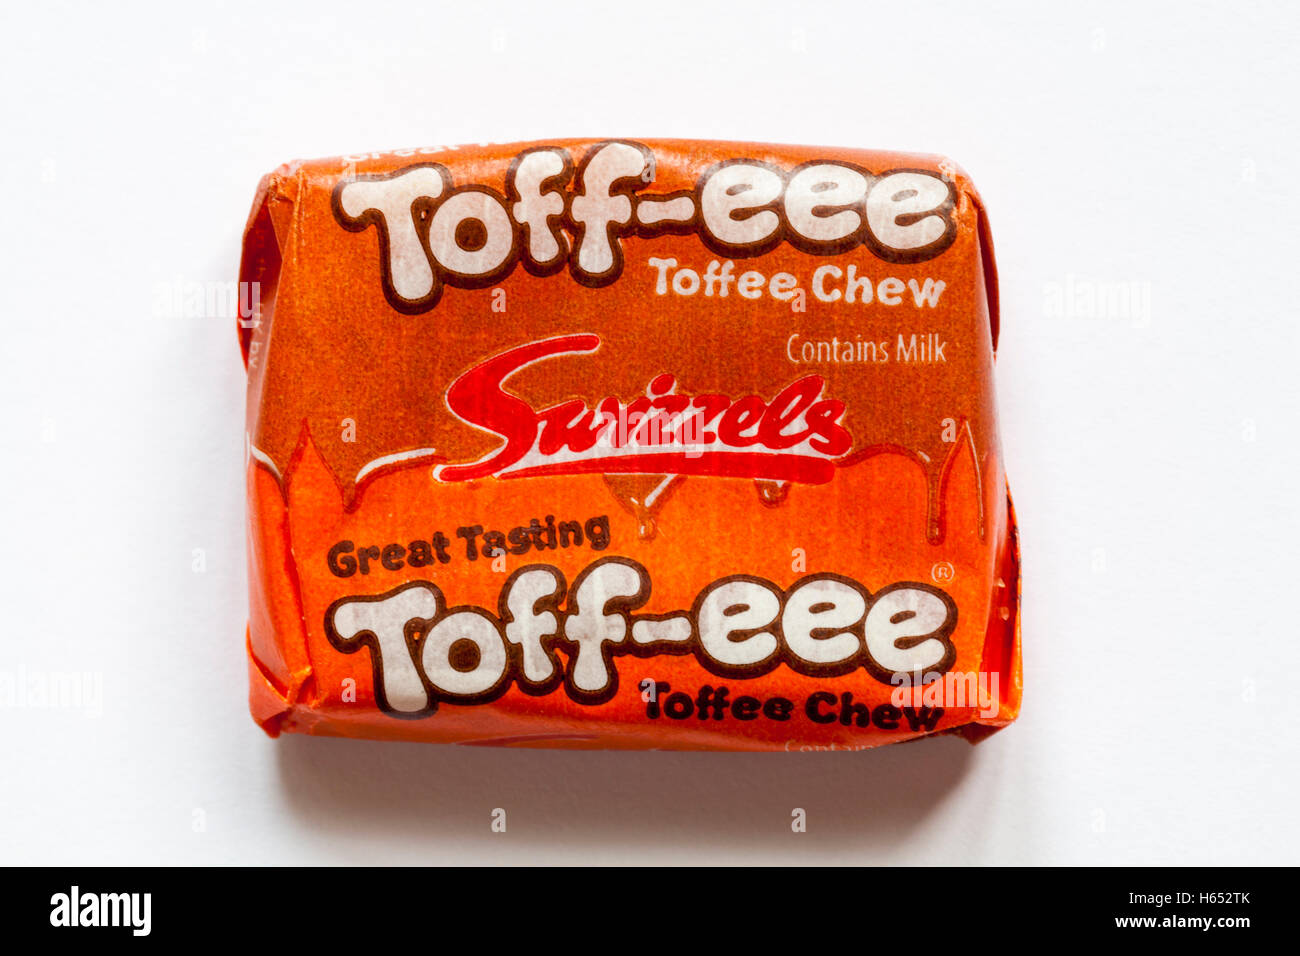 Swizzels great tasting toff-eee toffee chew sweet isolated on white background - chews sweets candies candy - Stock Image